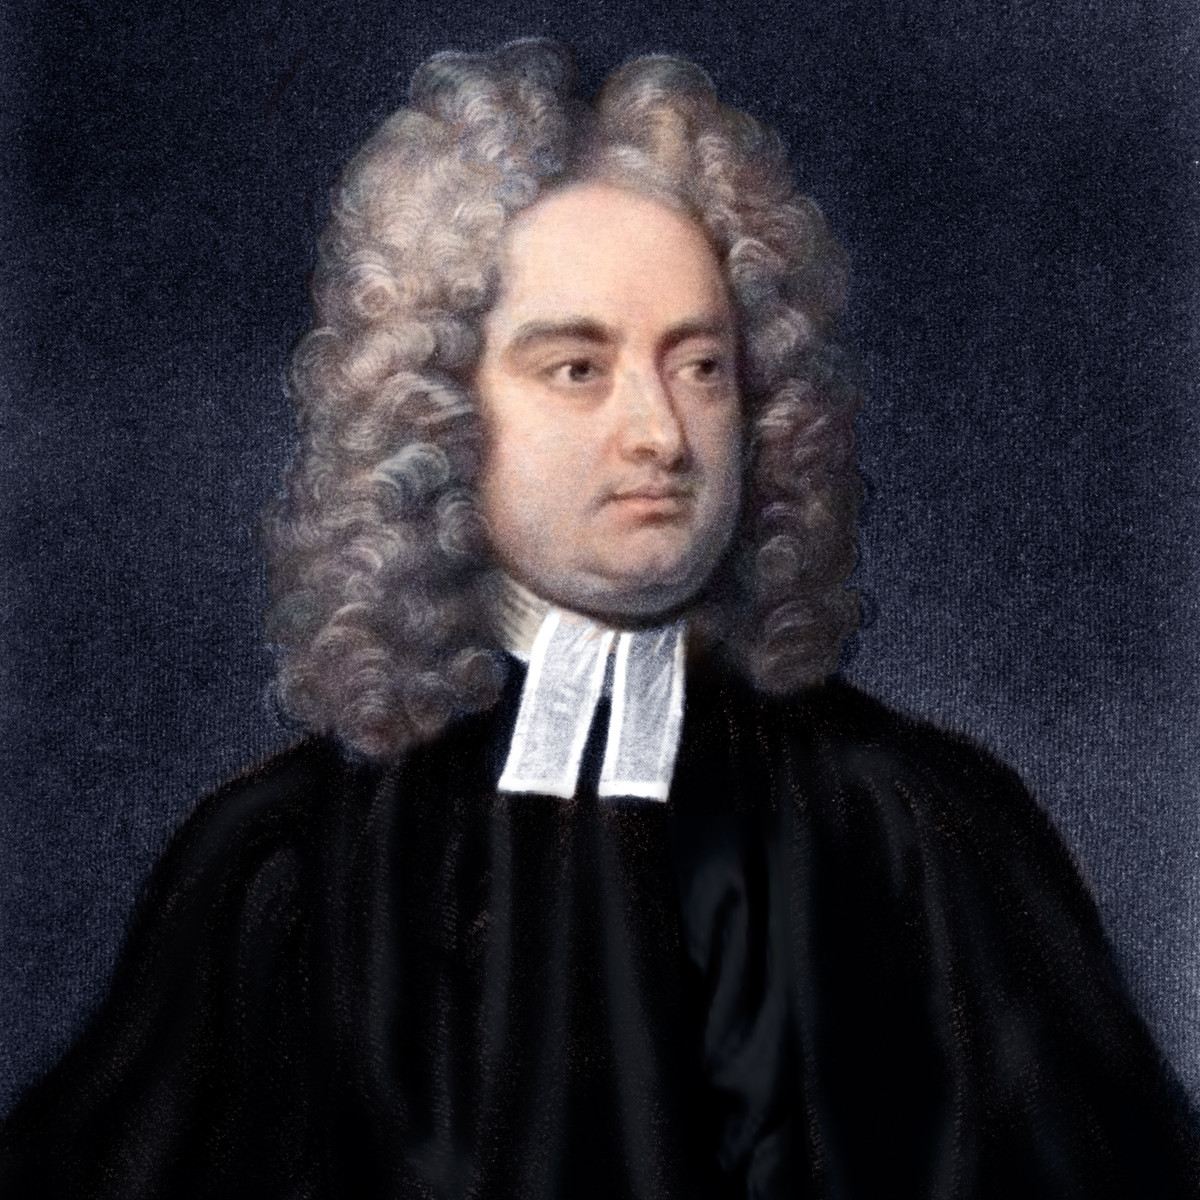 Satirist Jonathan Swift.